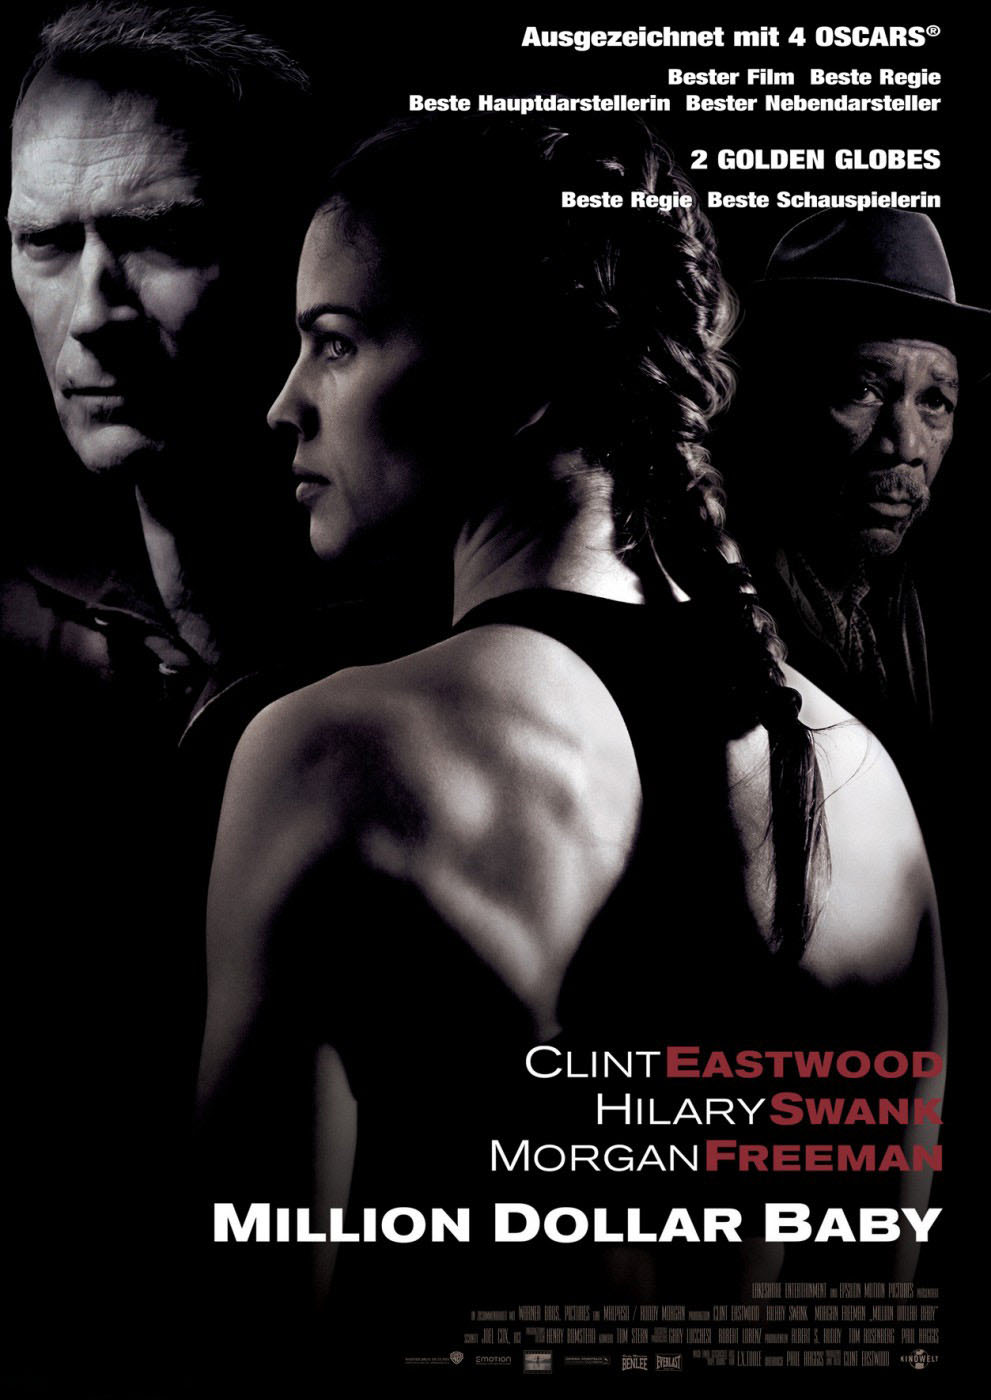 a review of the film million dollar baby by clint eastwood 31 days of oscar: my review of clint eastwood's oscar-winning boxing film starring himself, hilary swank, and morgan freemator best picture winner: 2004.